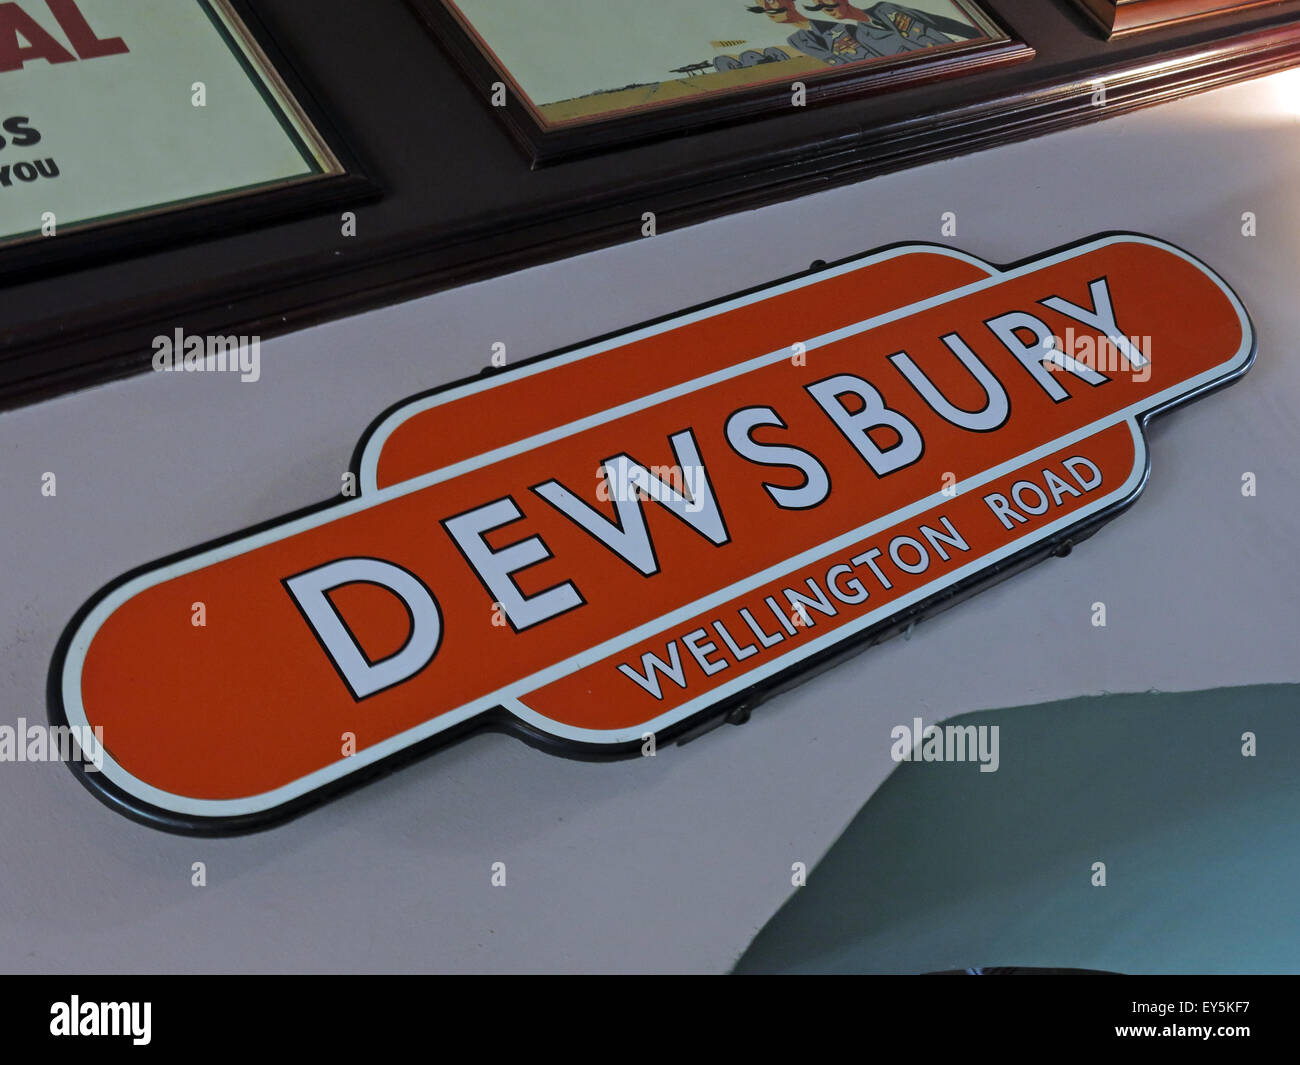 West Riding Pub, Dewsbury Railway Station, West Yorkshire, England, UK - Stock Image